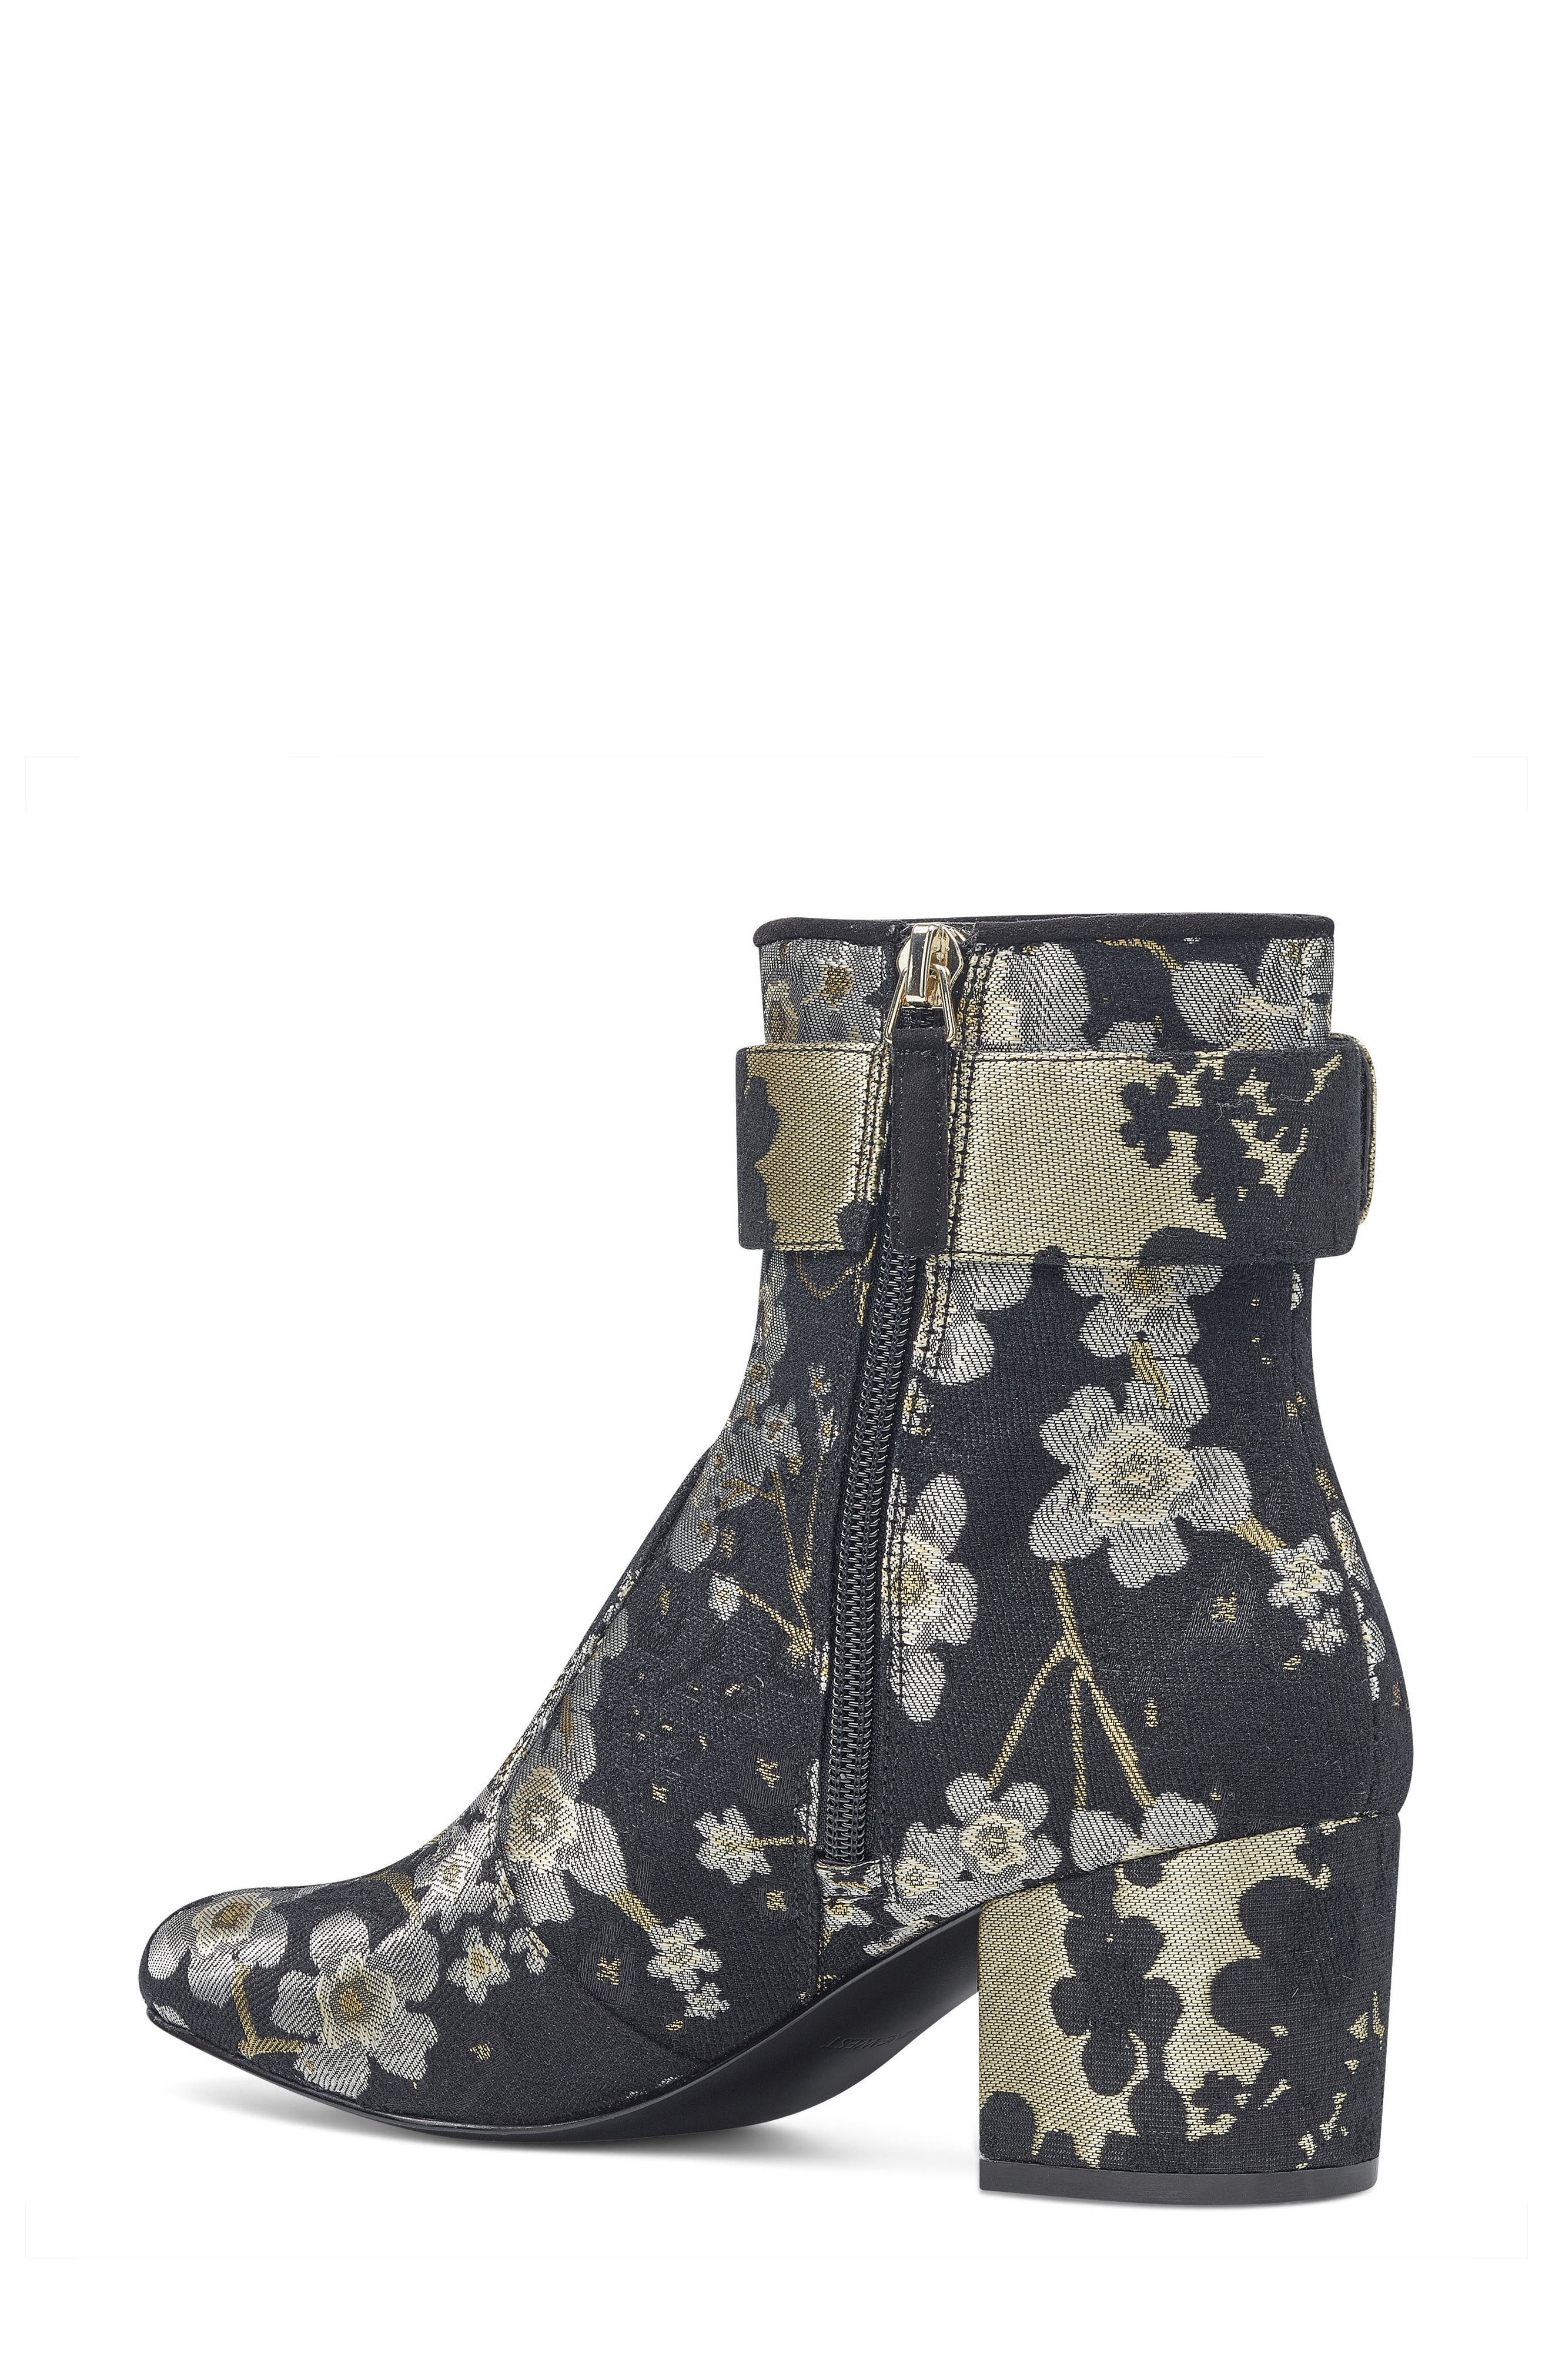 Quilby Bootie,                             Alternate thumbnail 2, color,                             002